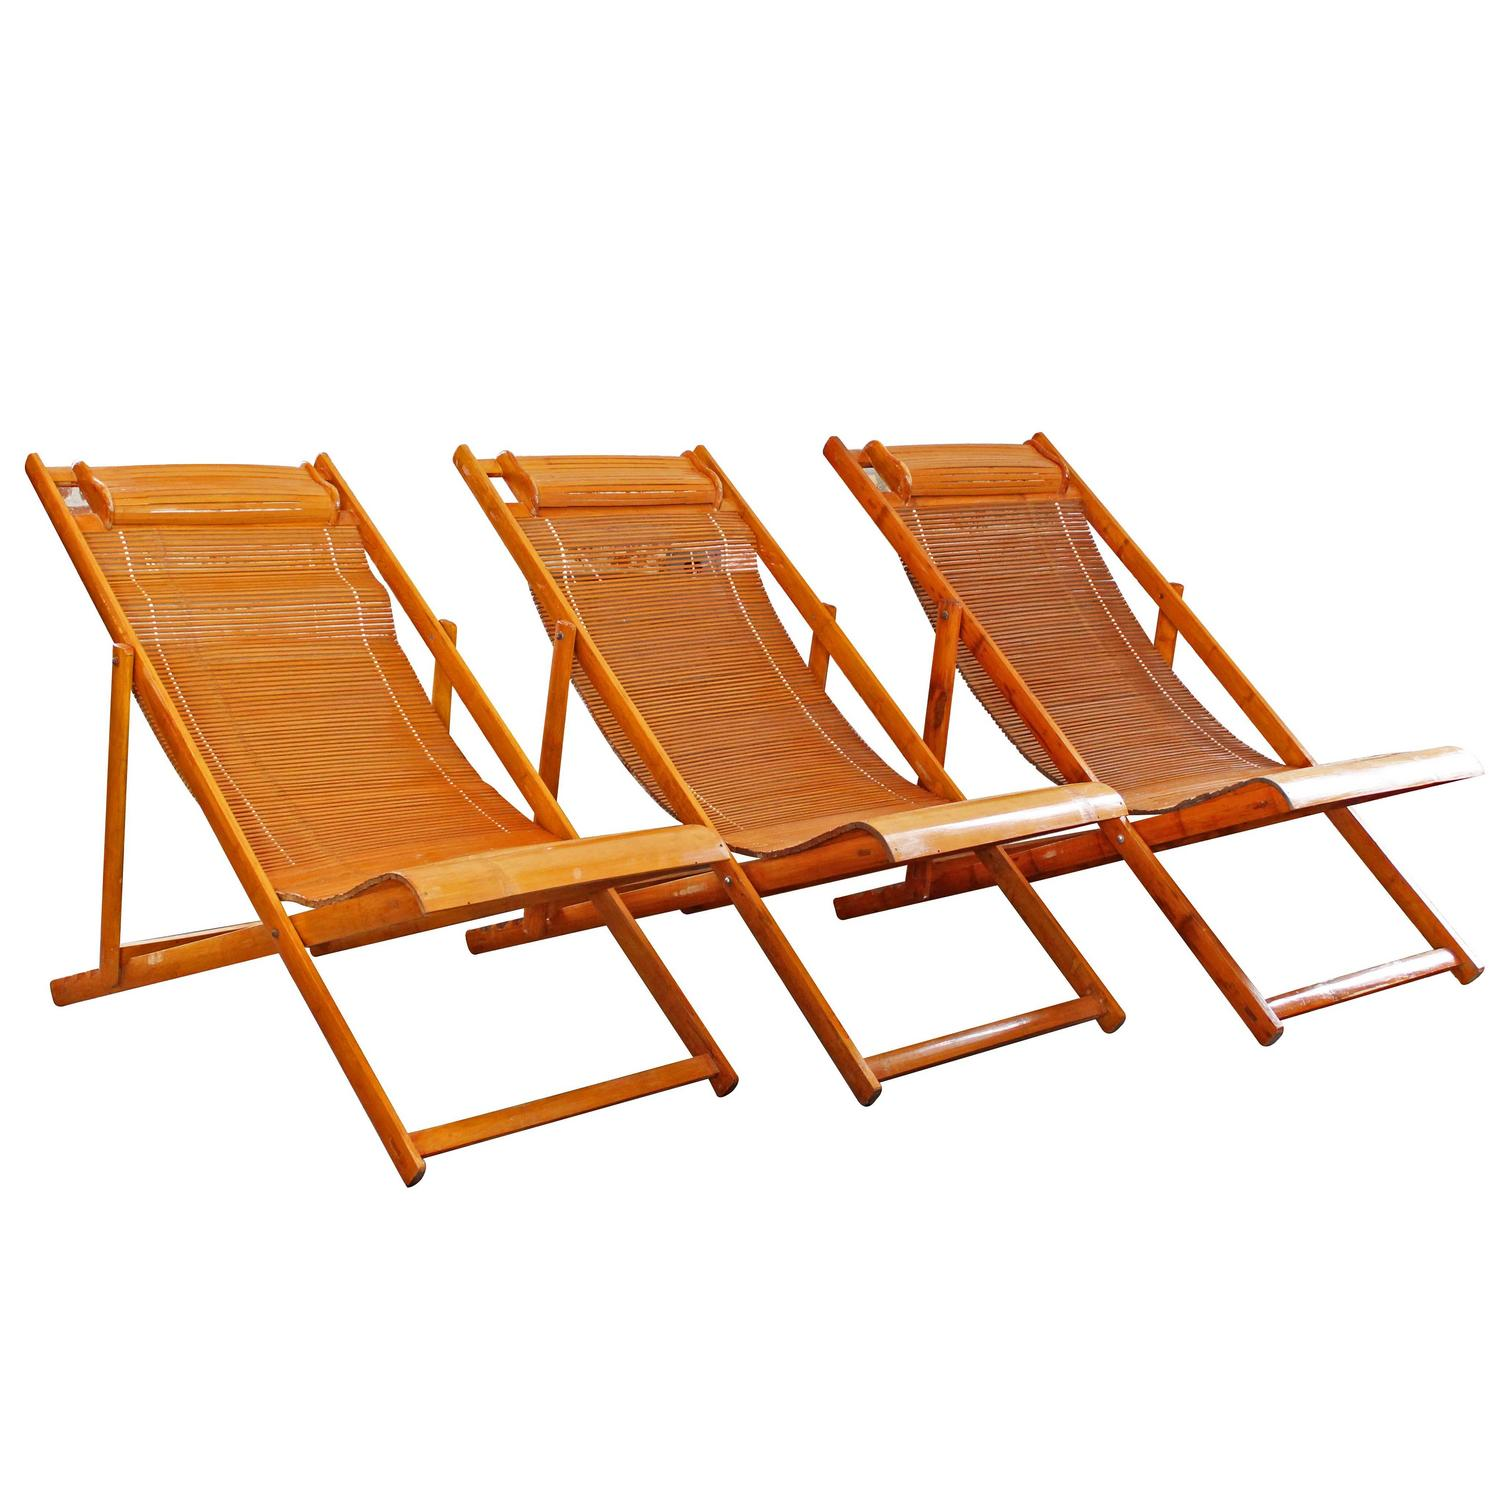 Vintage Bamboo Wood Japanese Deck Chairs Loungers Outdoor Fold Up